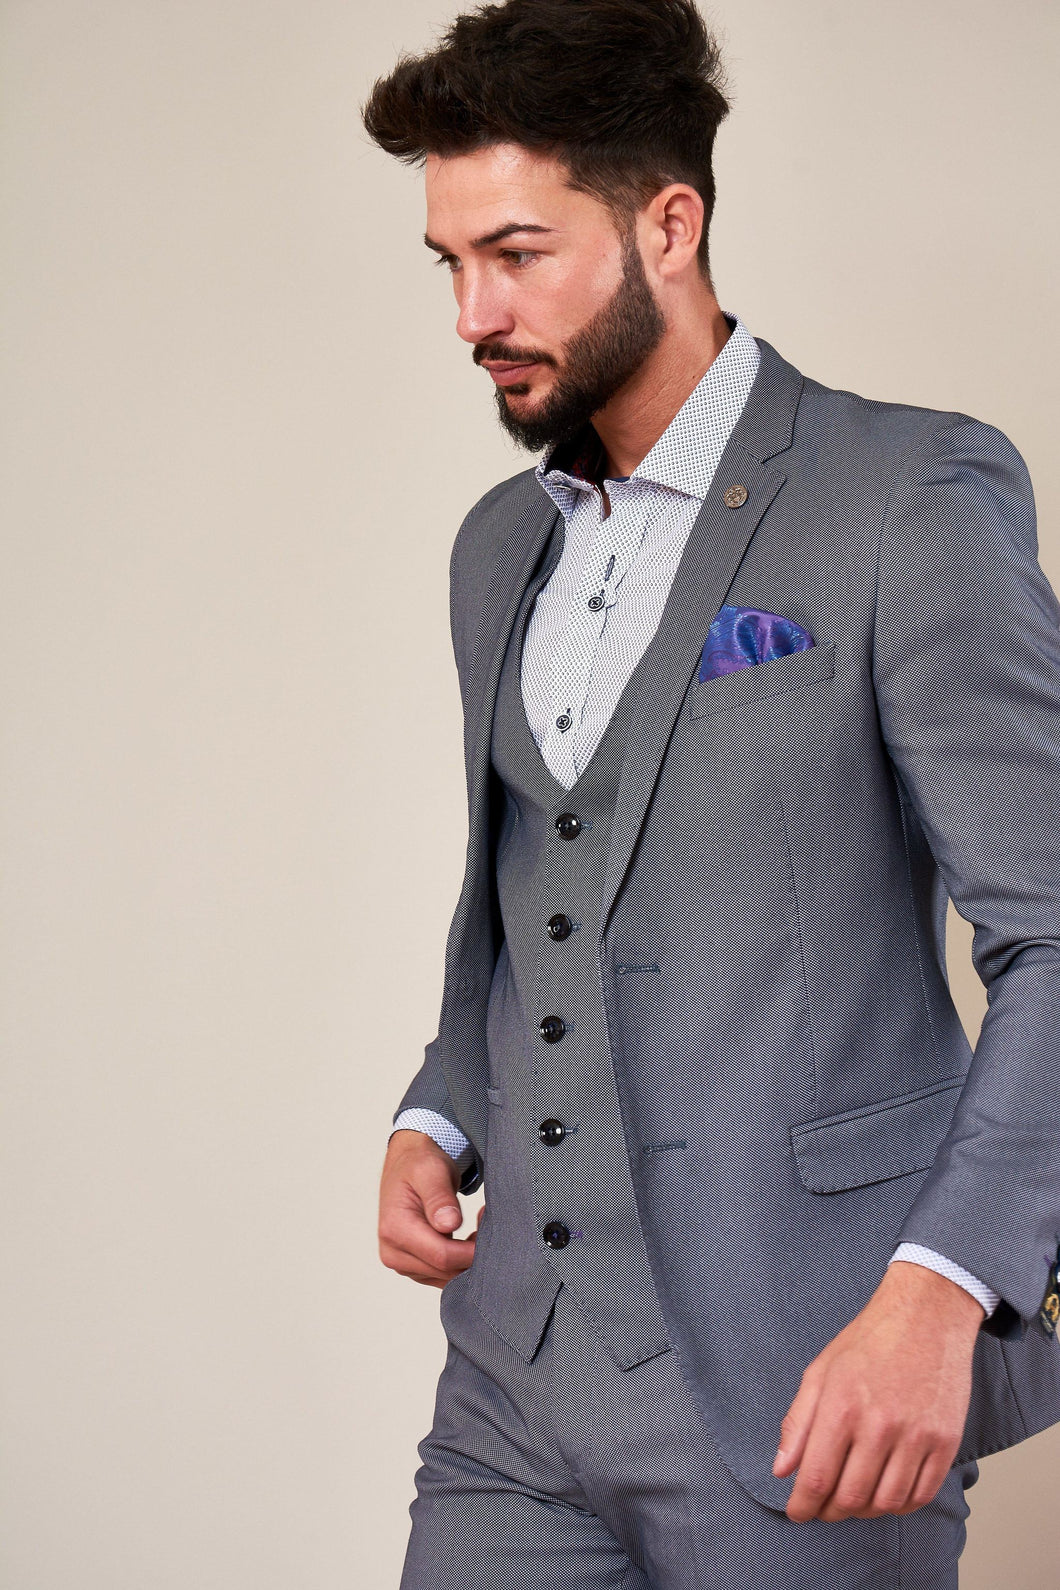 Marc Darcy: DANNY - Blue Grey Three Piece Suit With Single Breasted Waistcoat - Gilt Edged